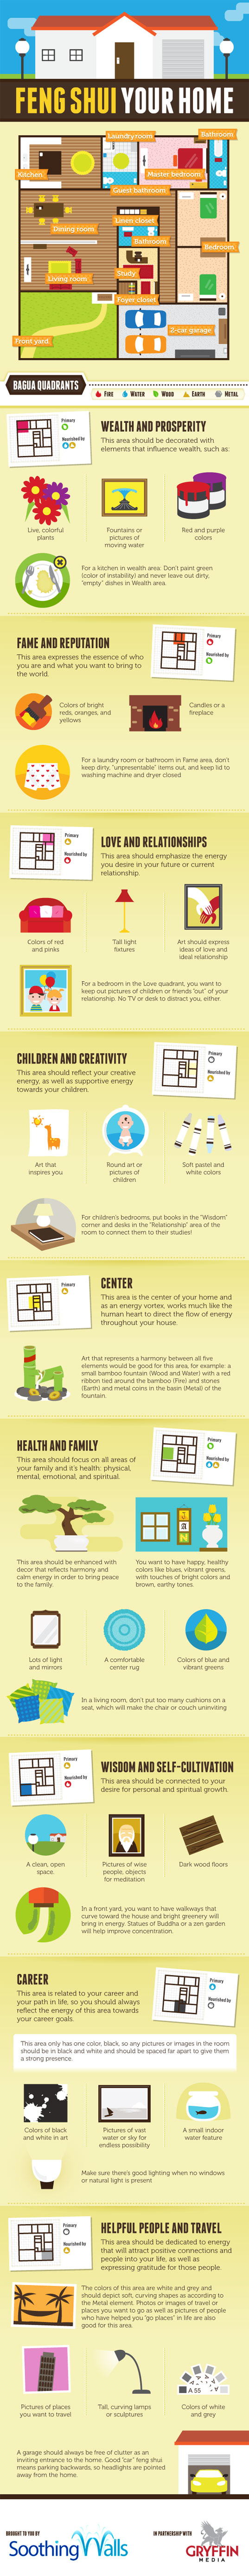 Tips For Choosing The Best Feng Shui Paint Colors